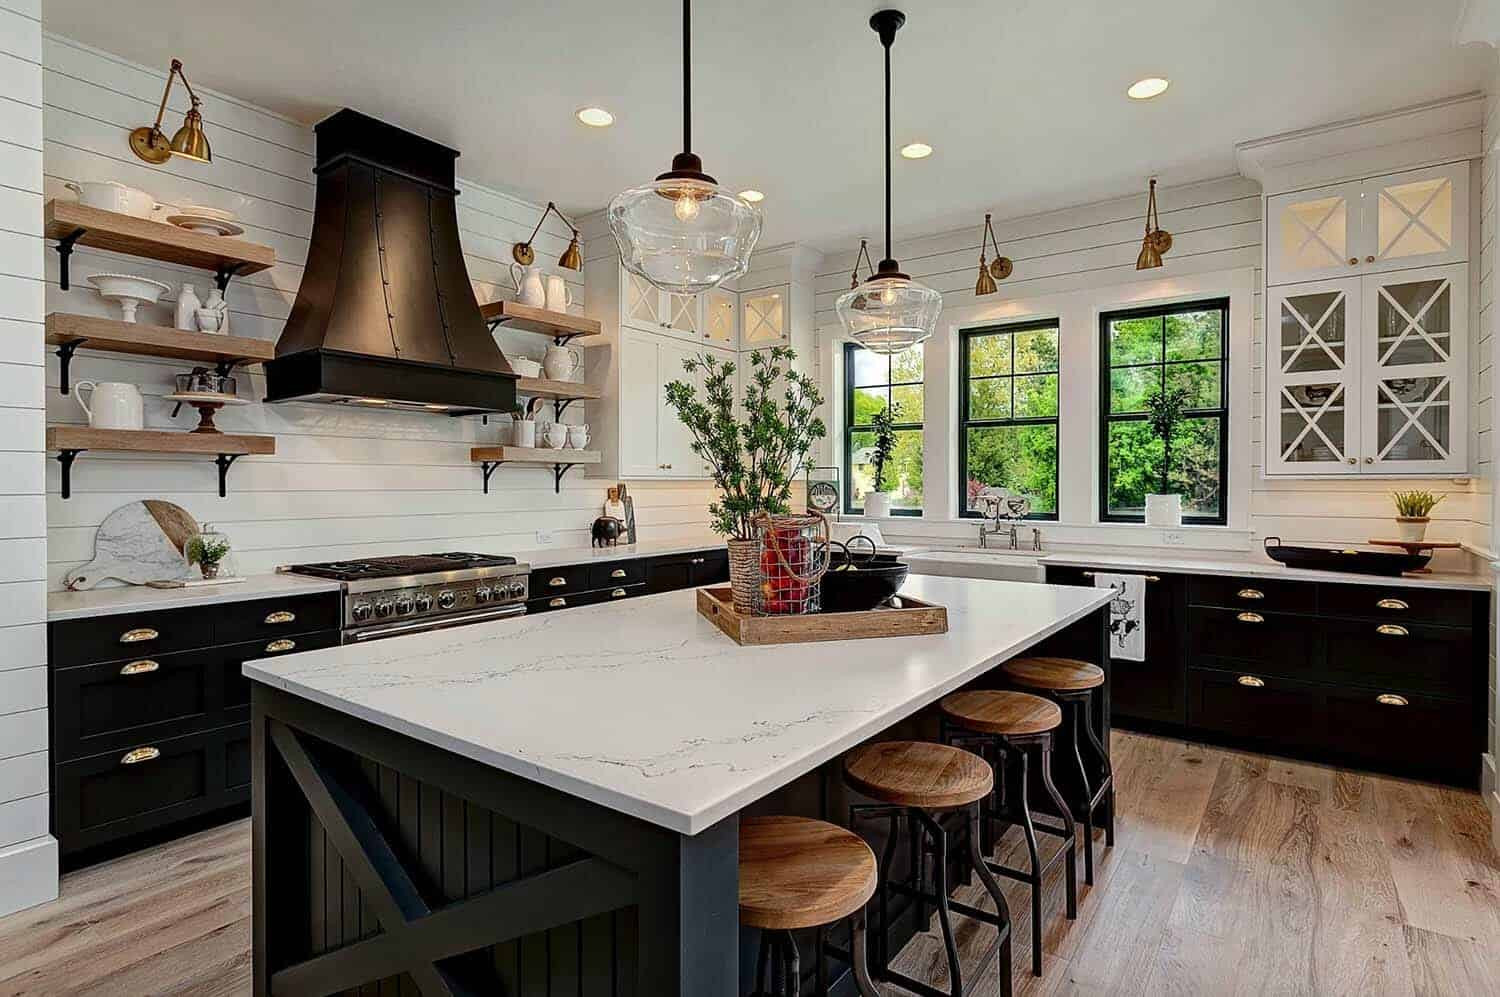 Best ideas about Small Farmhouse Kitchen Ideas . Save or Pin 35 Amazingly creative and stylish farmhouse kitchen ideas Now.